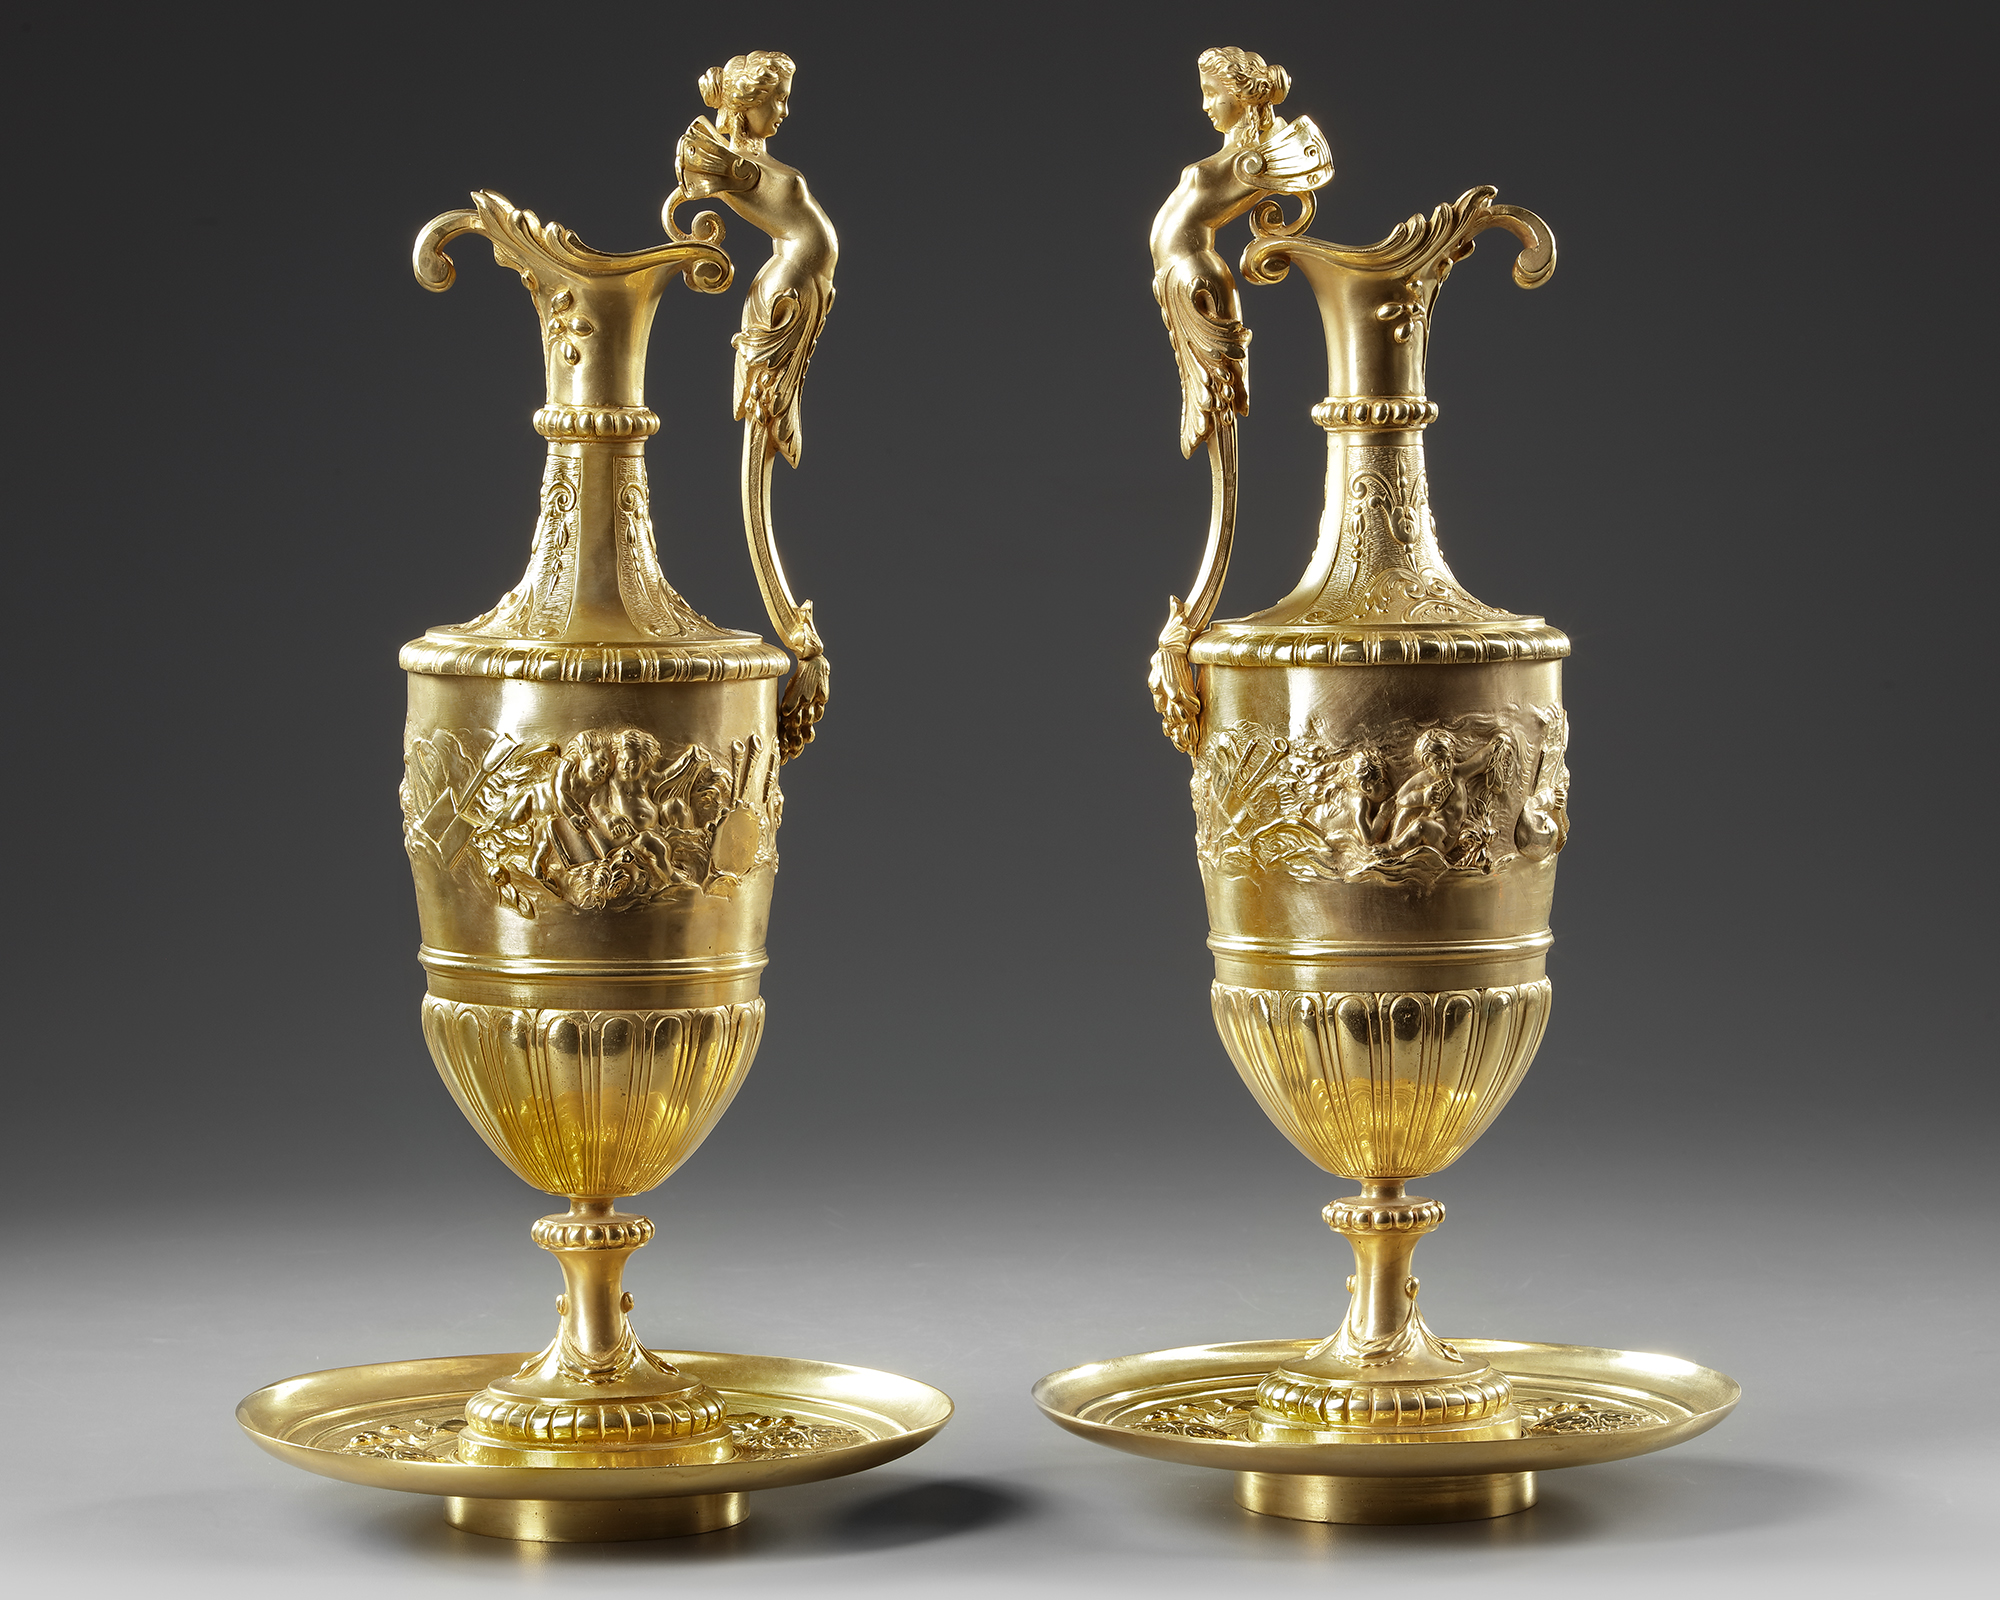 A PAIR OF FRENCH GILT BRONZE EWERS, 19TH CENTURY - Image 2 of 3